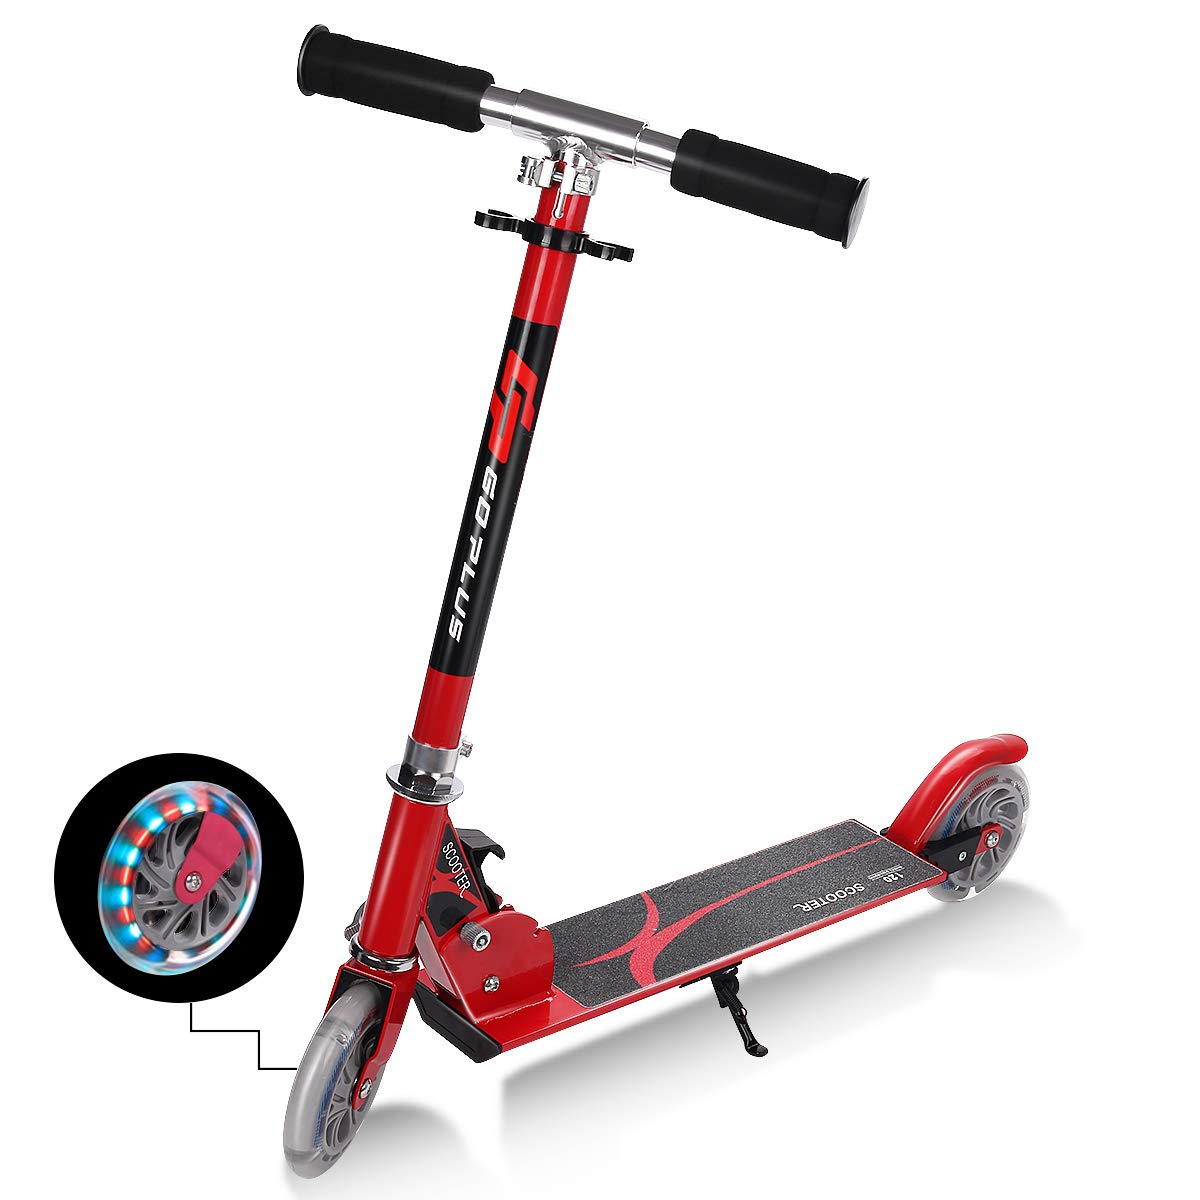 Goplus Folding Kick Scooter for Kids Deluxe Aluminum 2 Wheels Glider Adjustable Height with LED Light Up Rear Wheel for Girls and Boys (Red) by Goplus